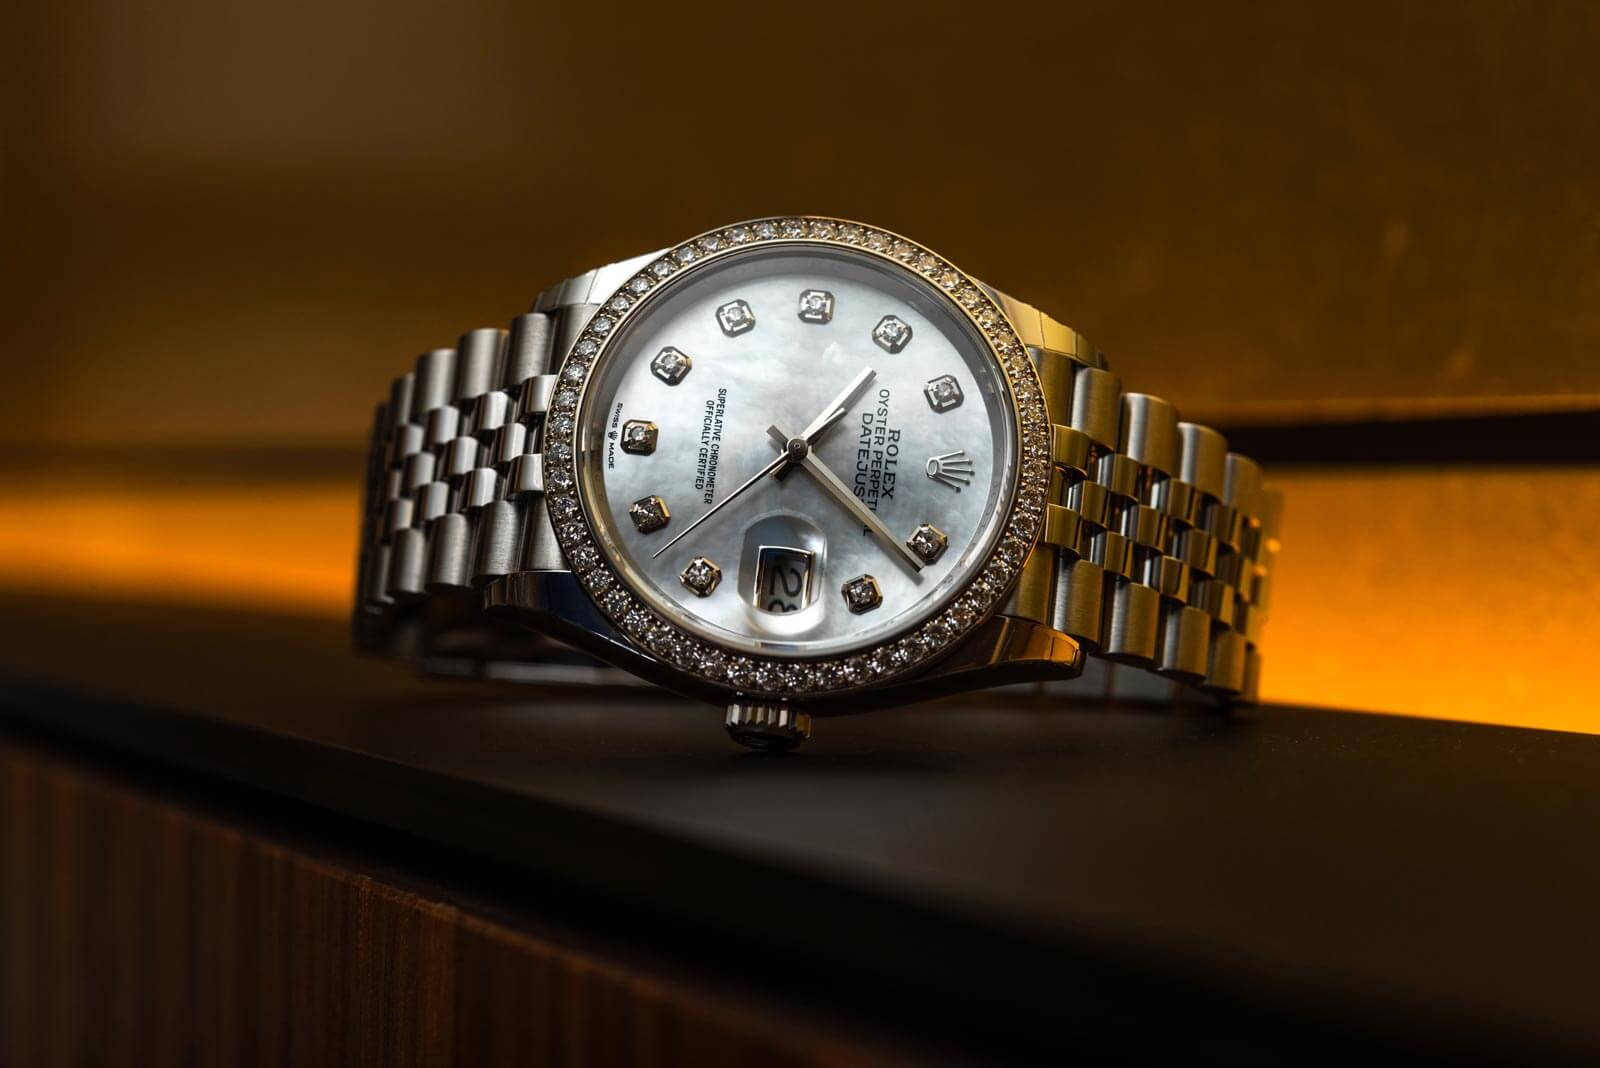 Rolex Datejust 36 <br> Reference 126284RBR